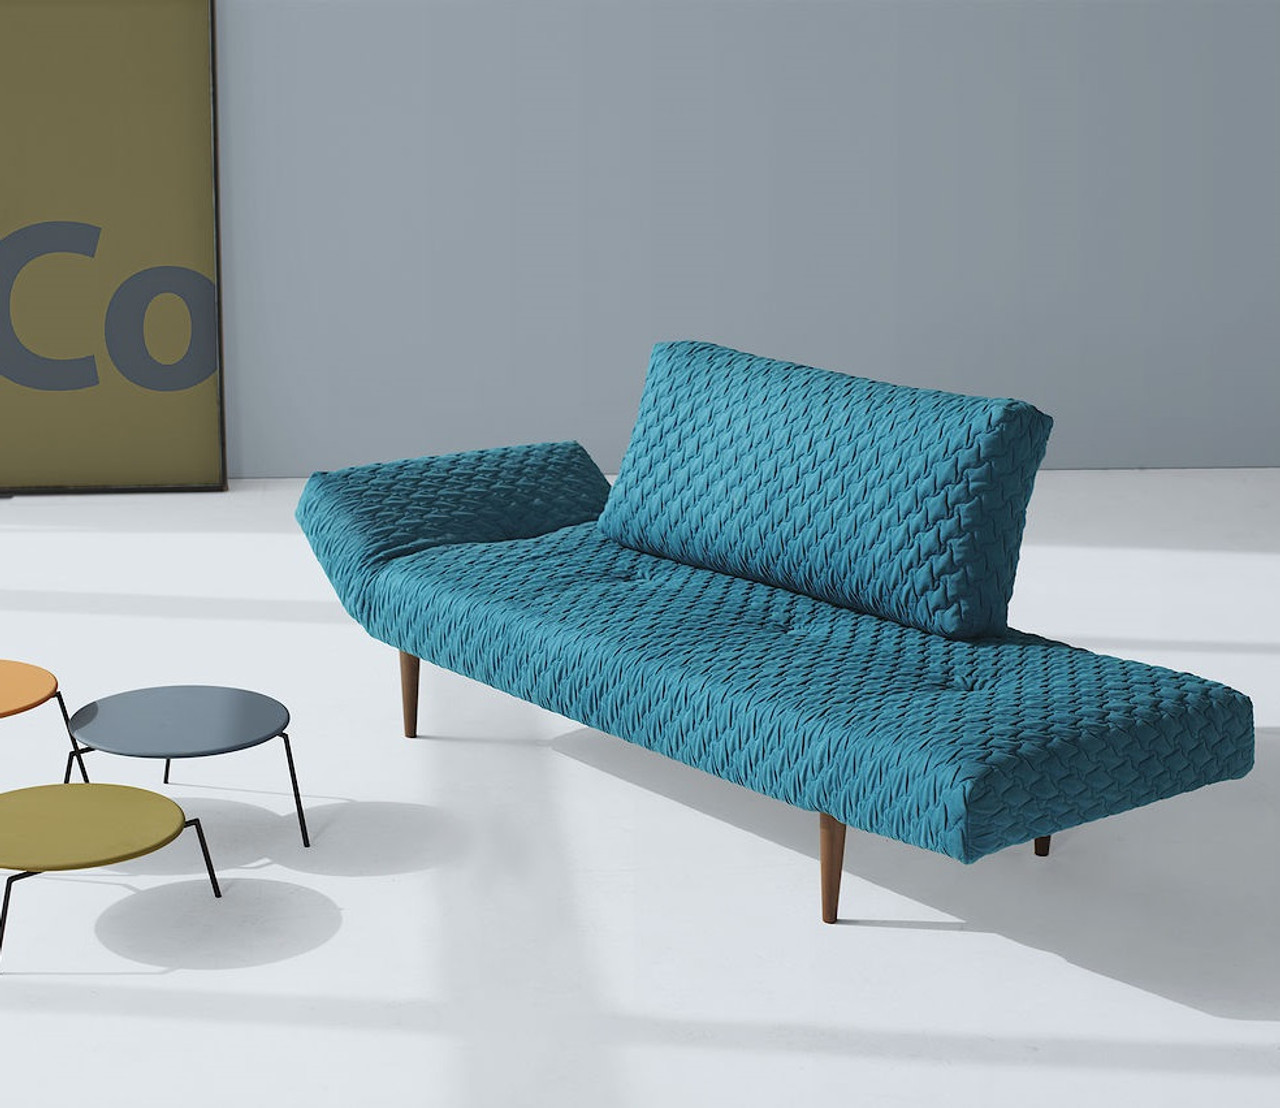 Zeal Coz Convertible Daybed